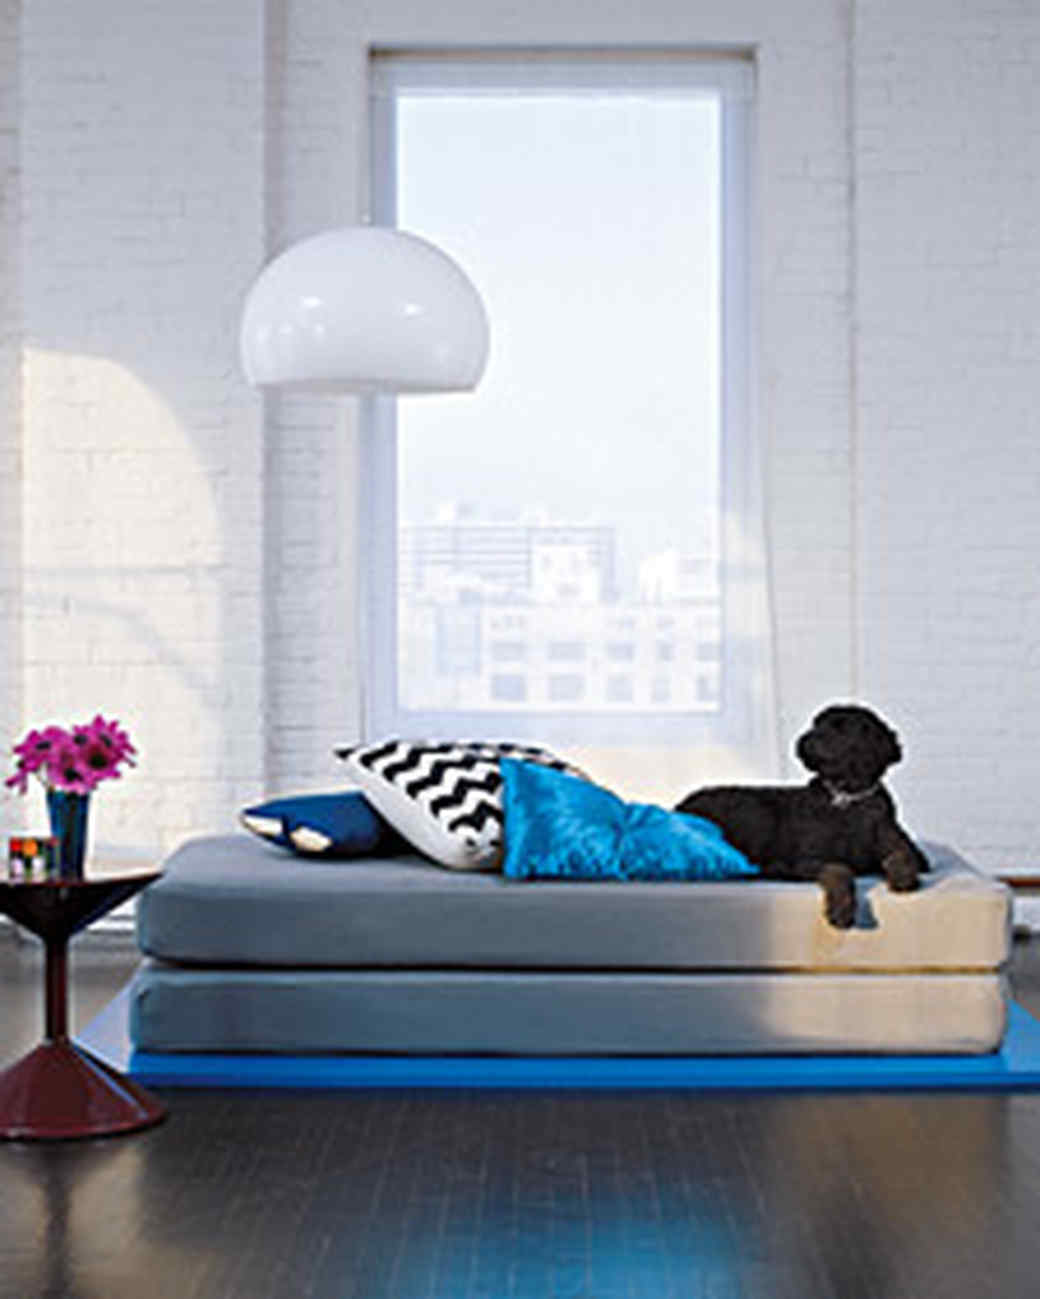 pa102930_0707_daybed.jpg